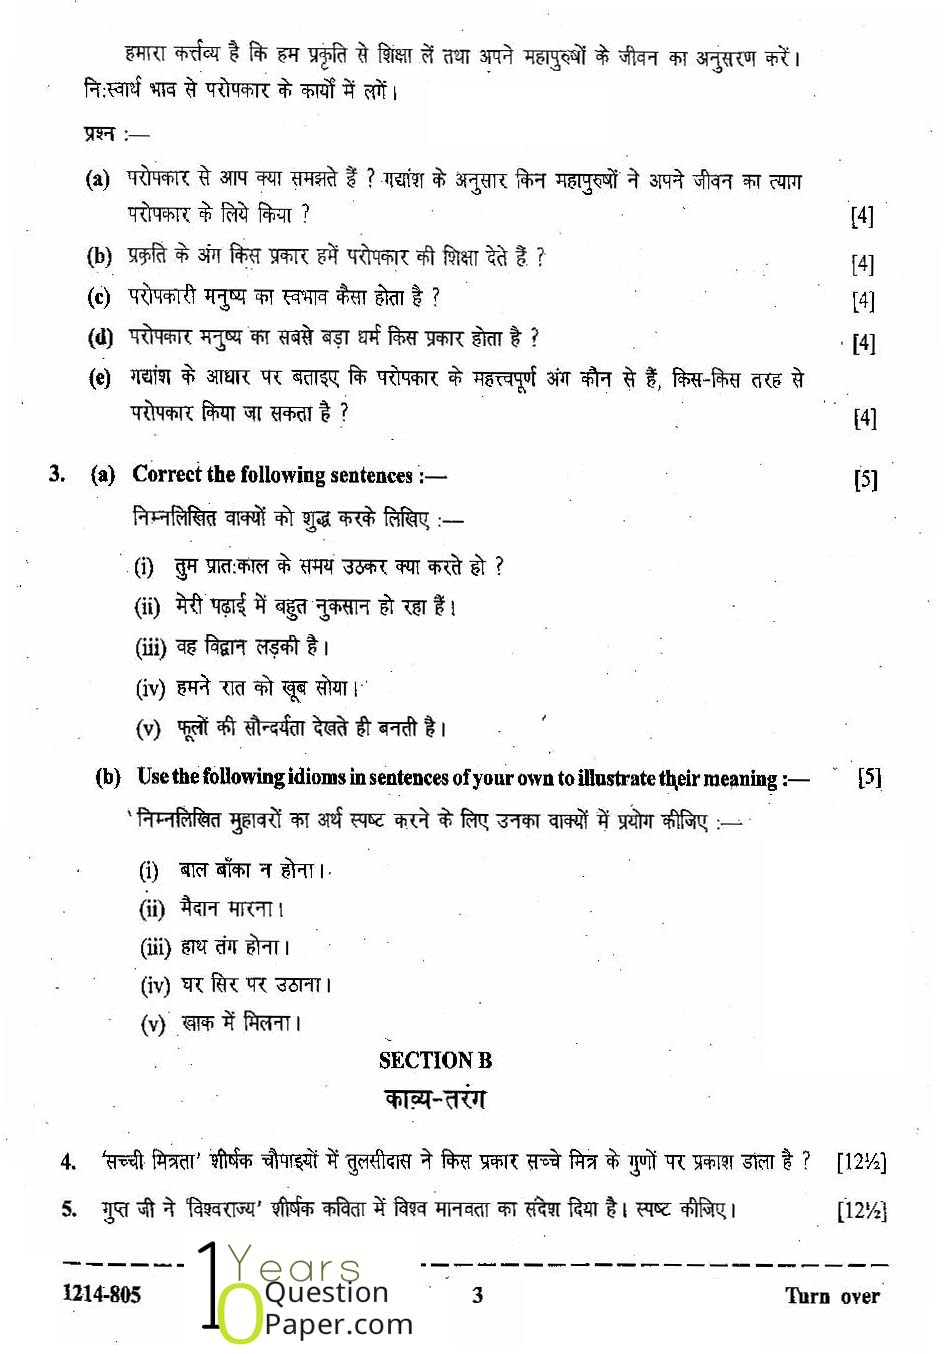 isc 2014 class 12th Hindi question paper